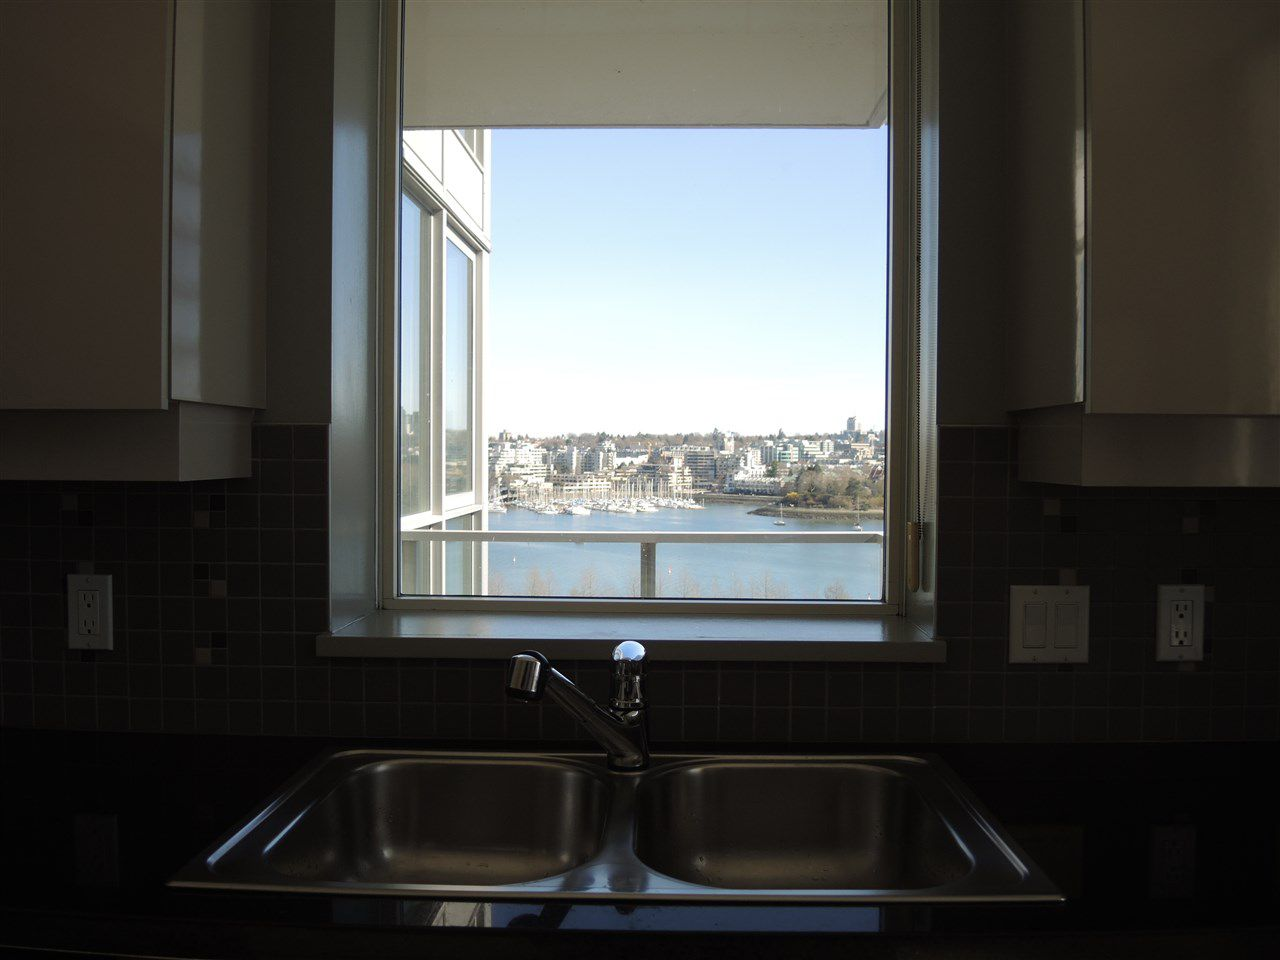 Photo 11: Photos: 902 1408 STRATHMORE MEWS in Vancouver: Yaletown Condo for sale (Vancouver West)  : MLS®# R2011692